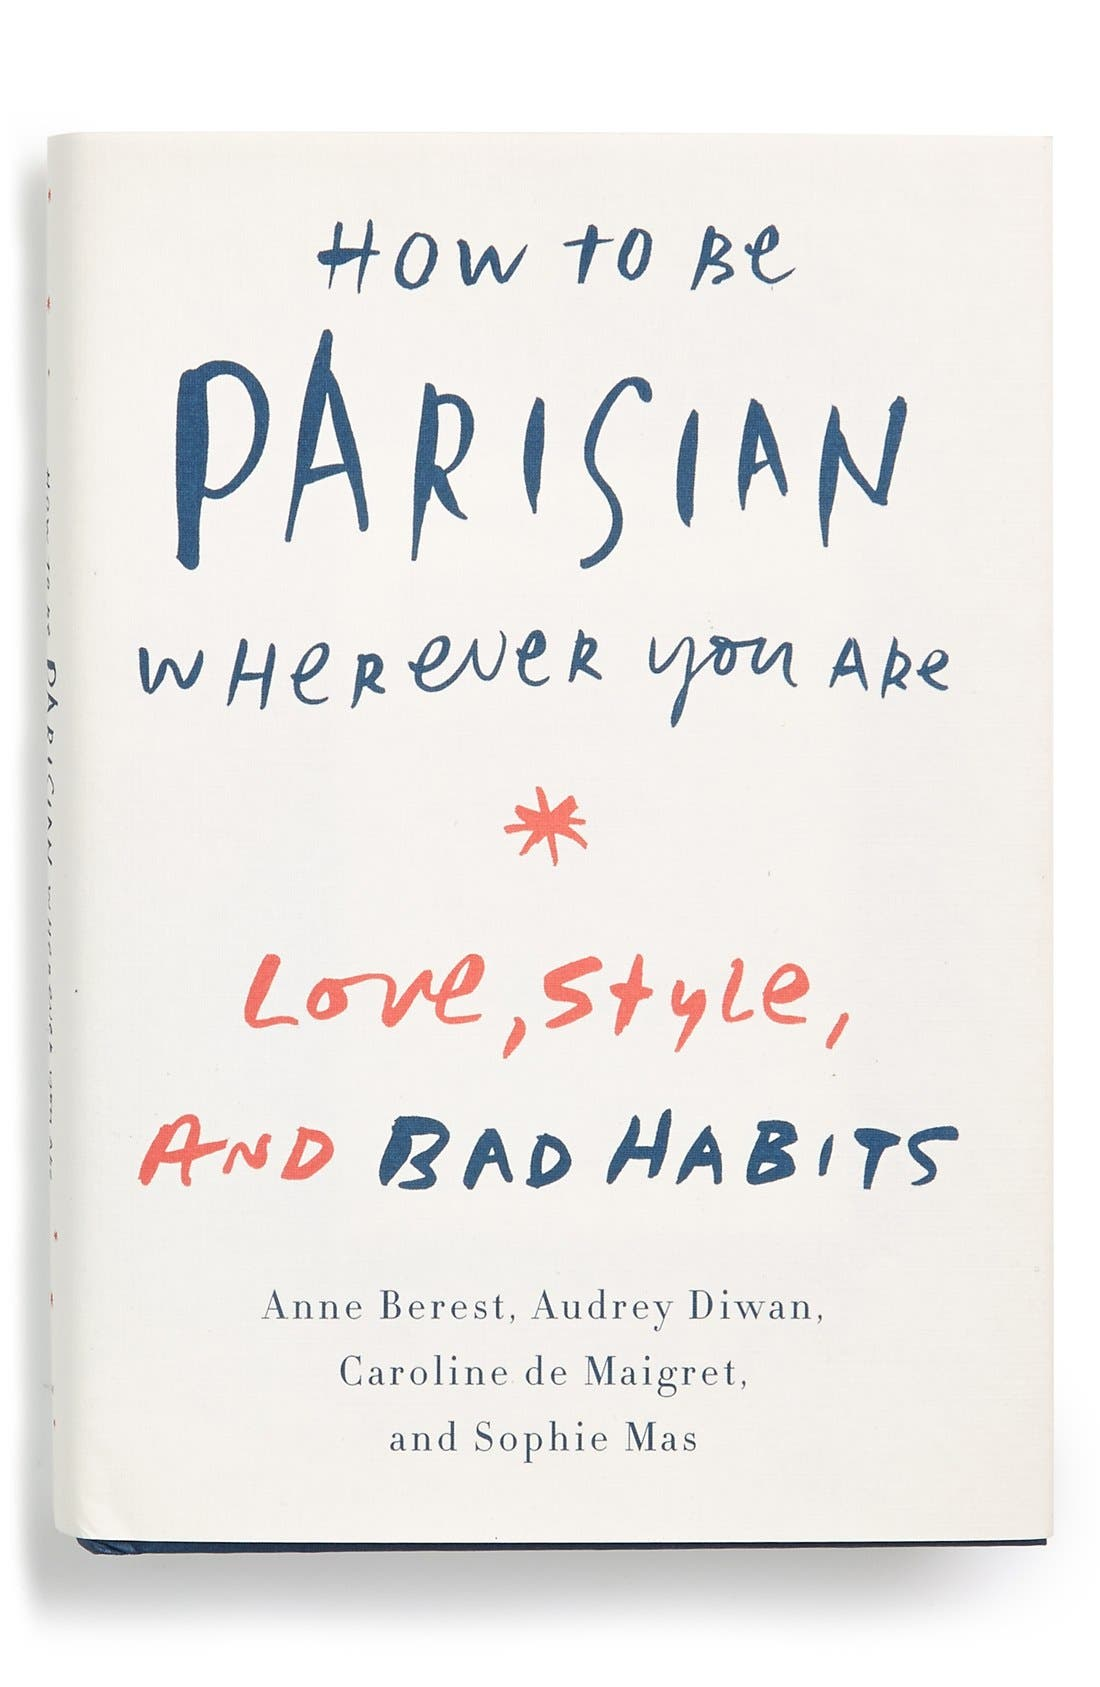 Alternate Image 1 Selected - 'How to Be Parisian Wherever You Are: Love, Style and Bad Habits' Book